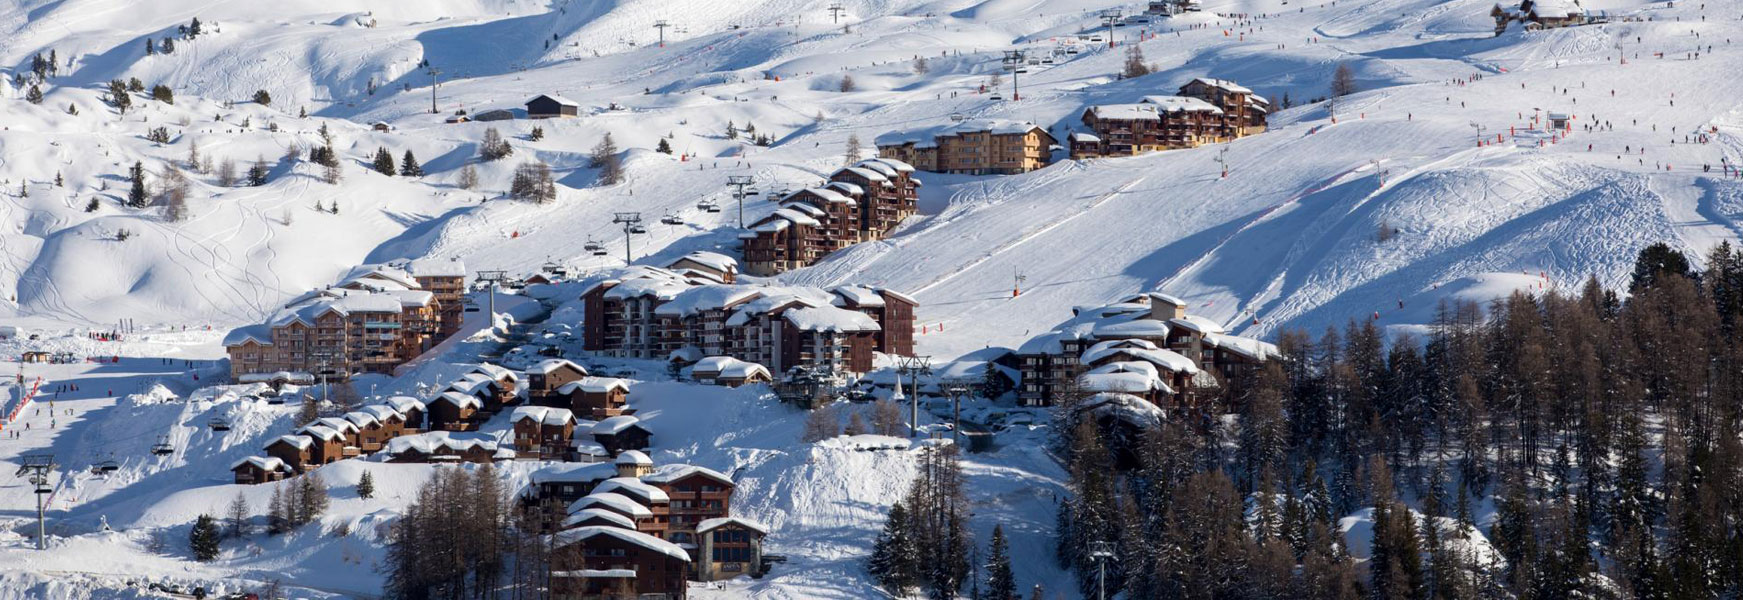 Location Ski Intersport La Plagne Soleil